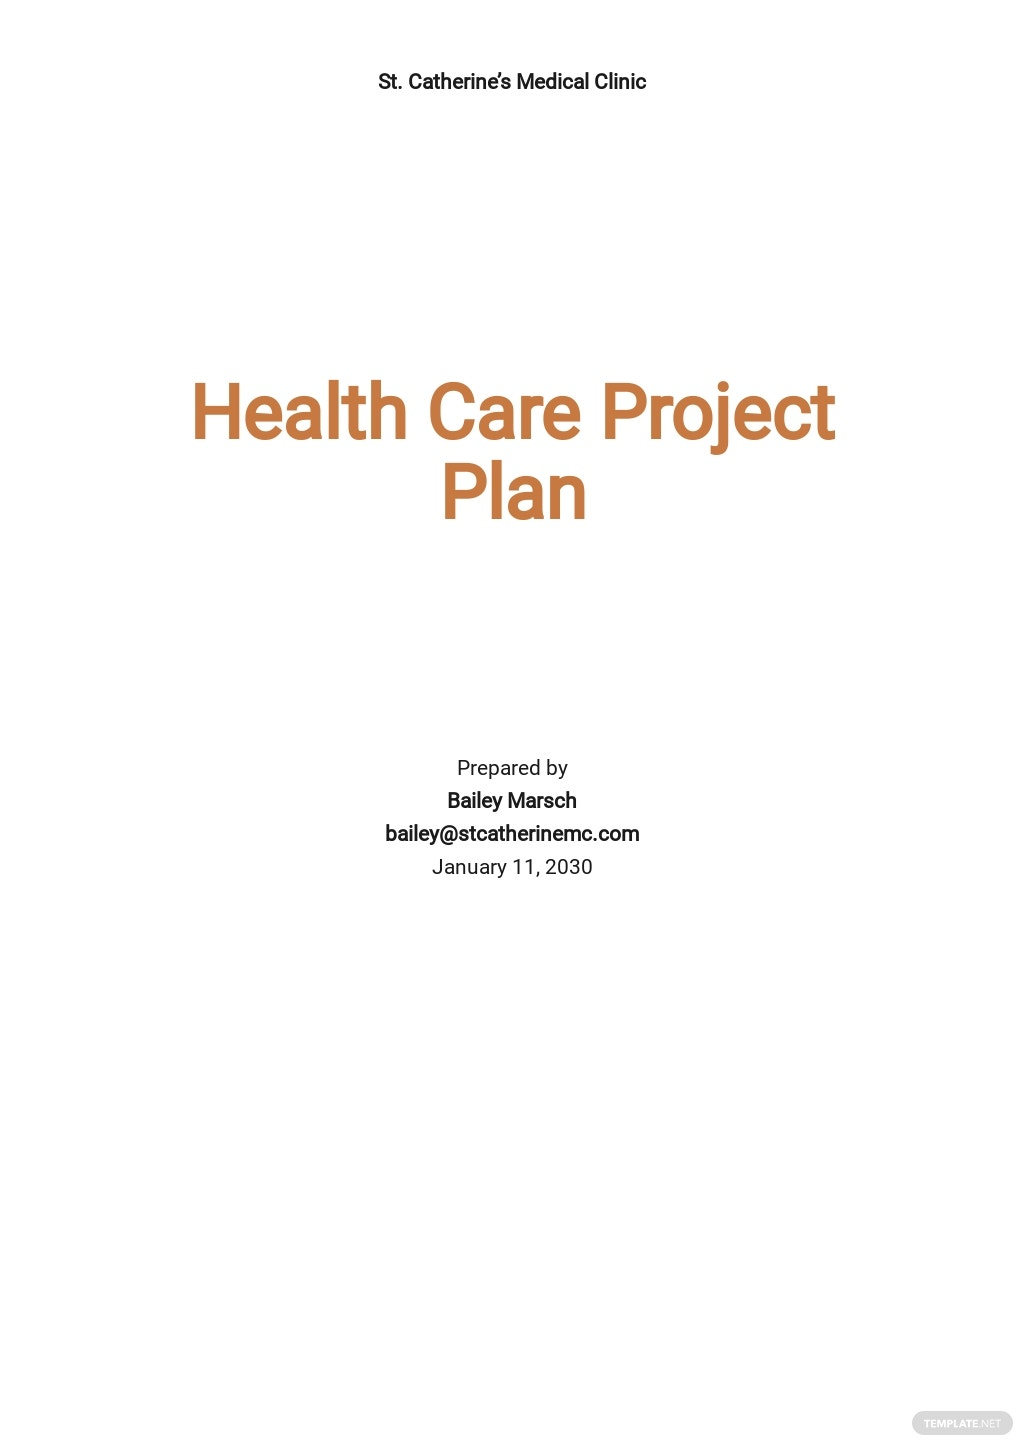 Health Care Project Plan Template